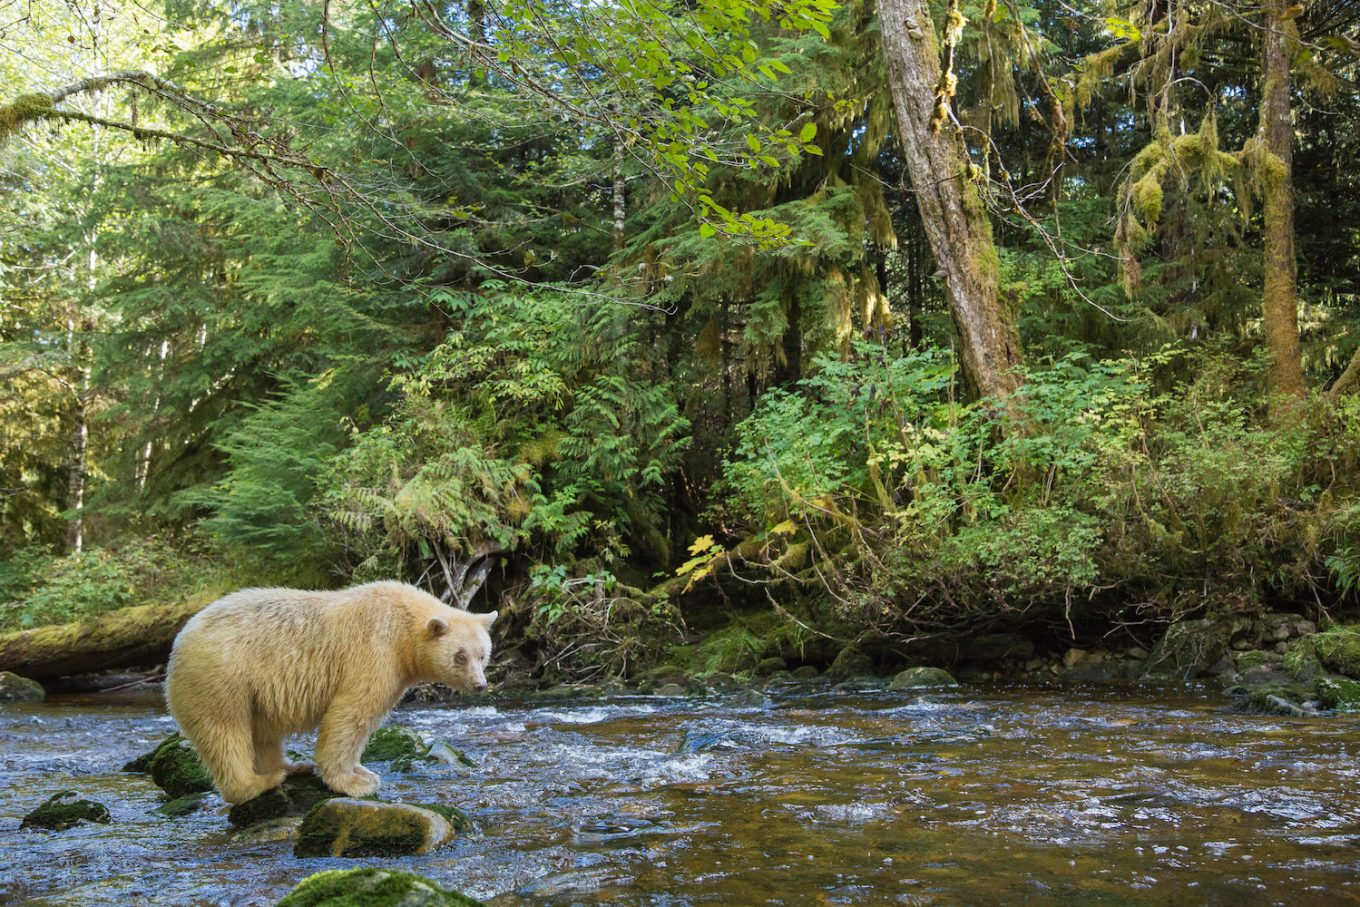 A spirit bear scanning a creek for salmon in the Great Bear Rainforest